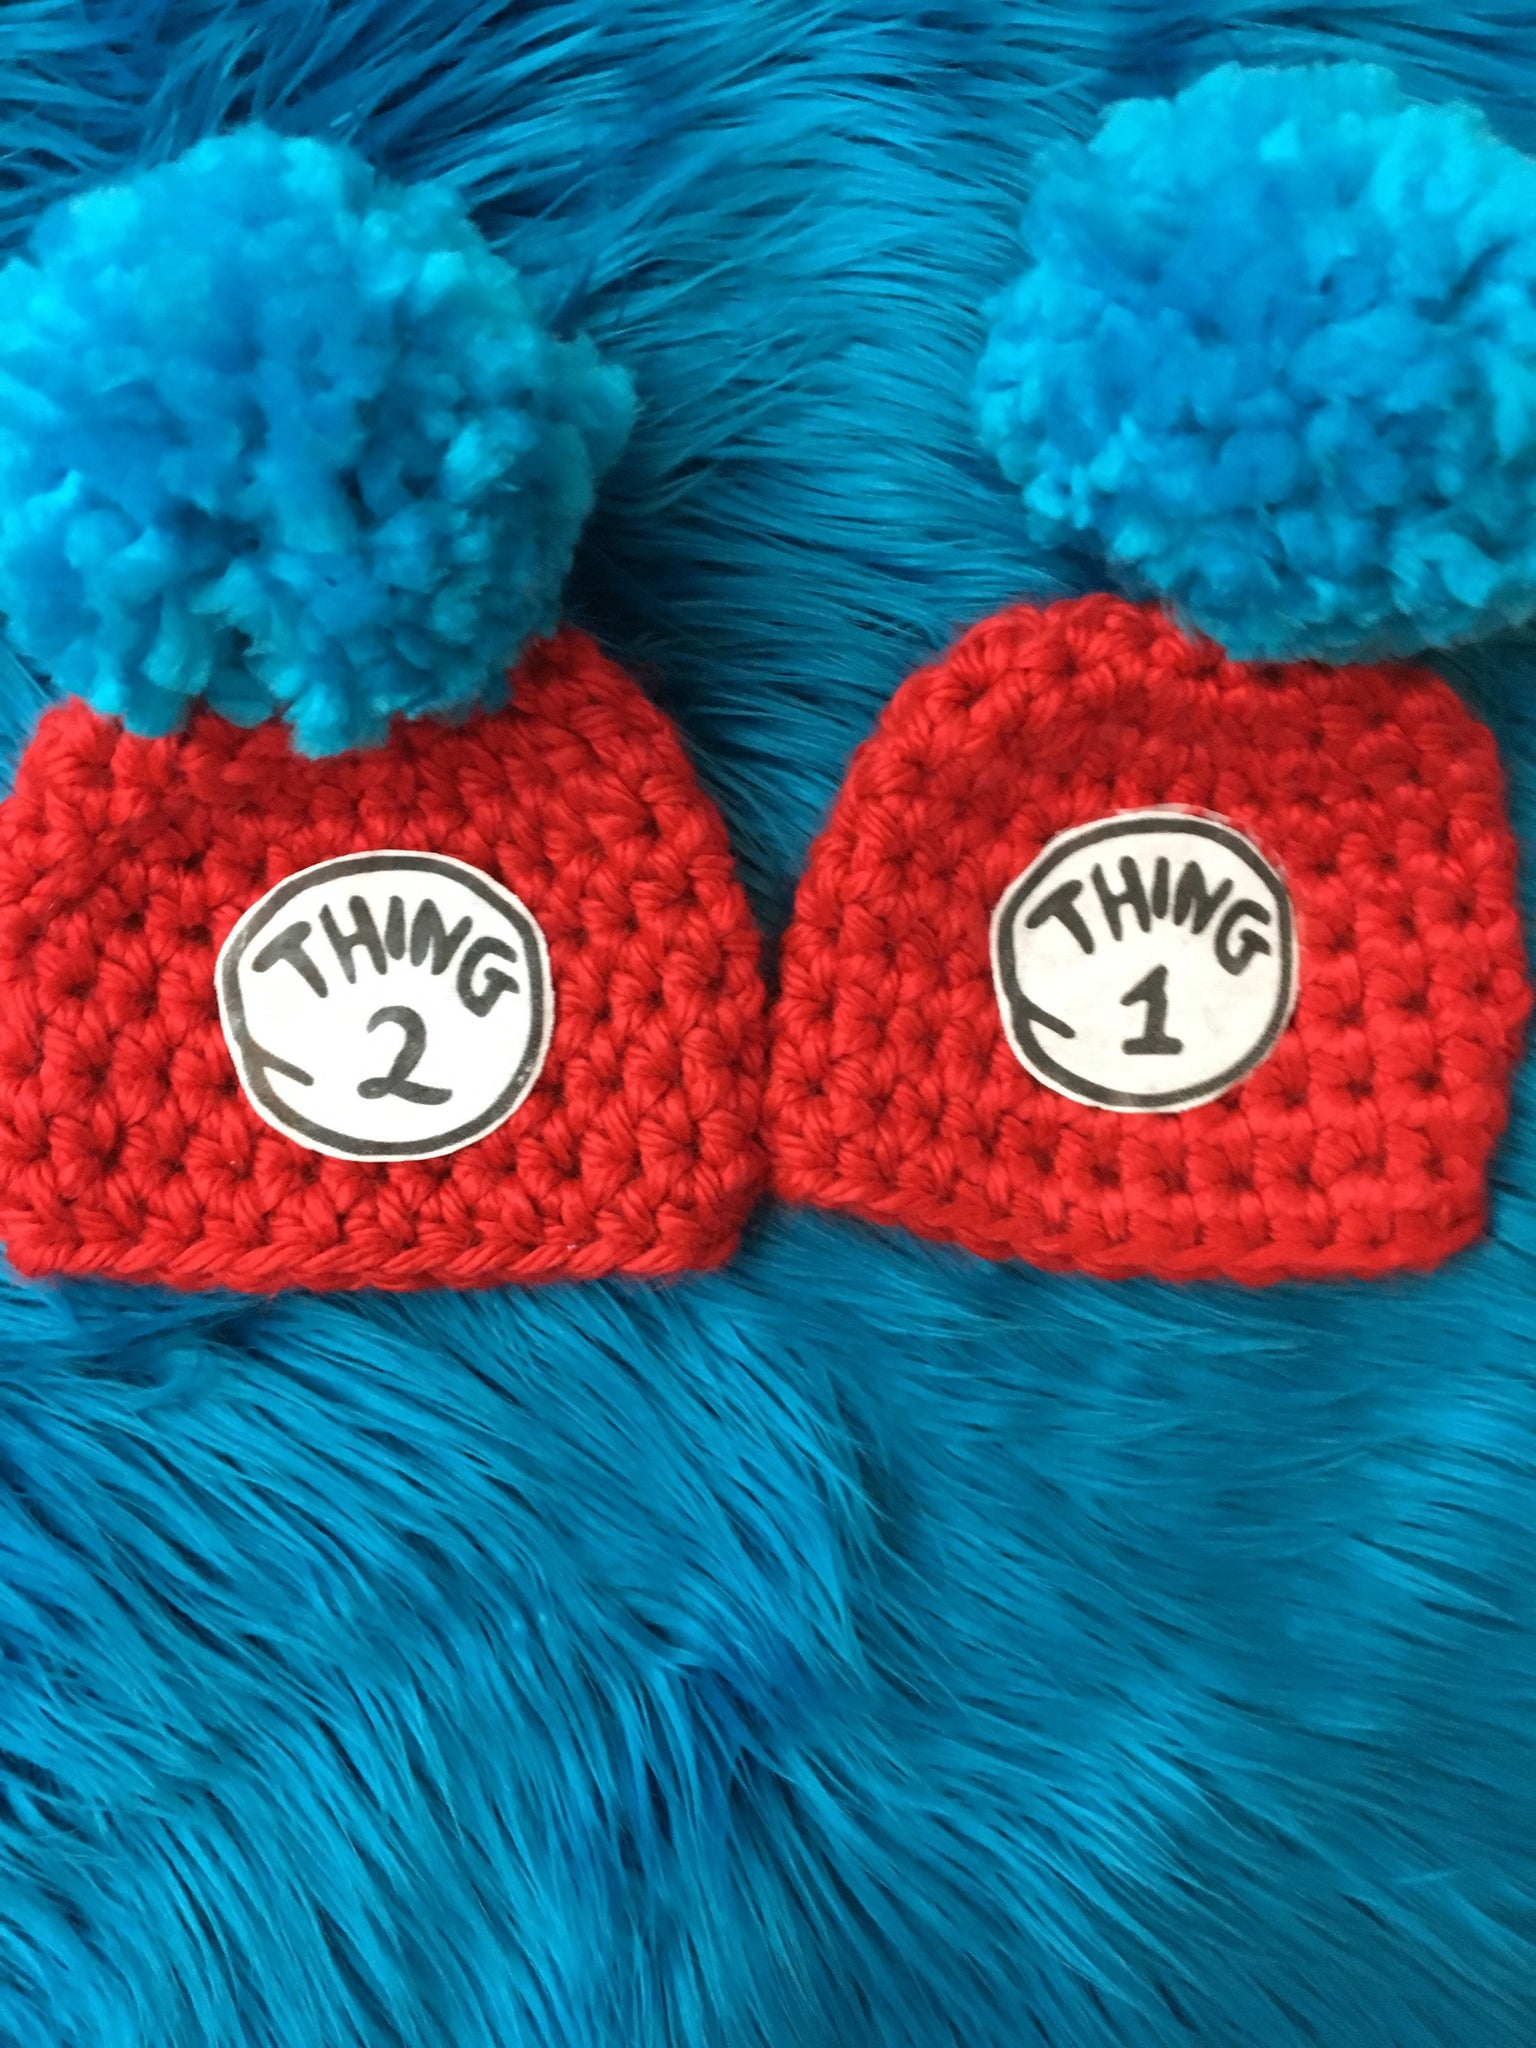 newborn twins halloween costume thing 1 and thing 2 baby photo prop set twins